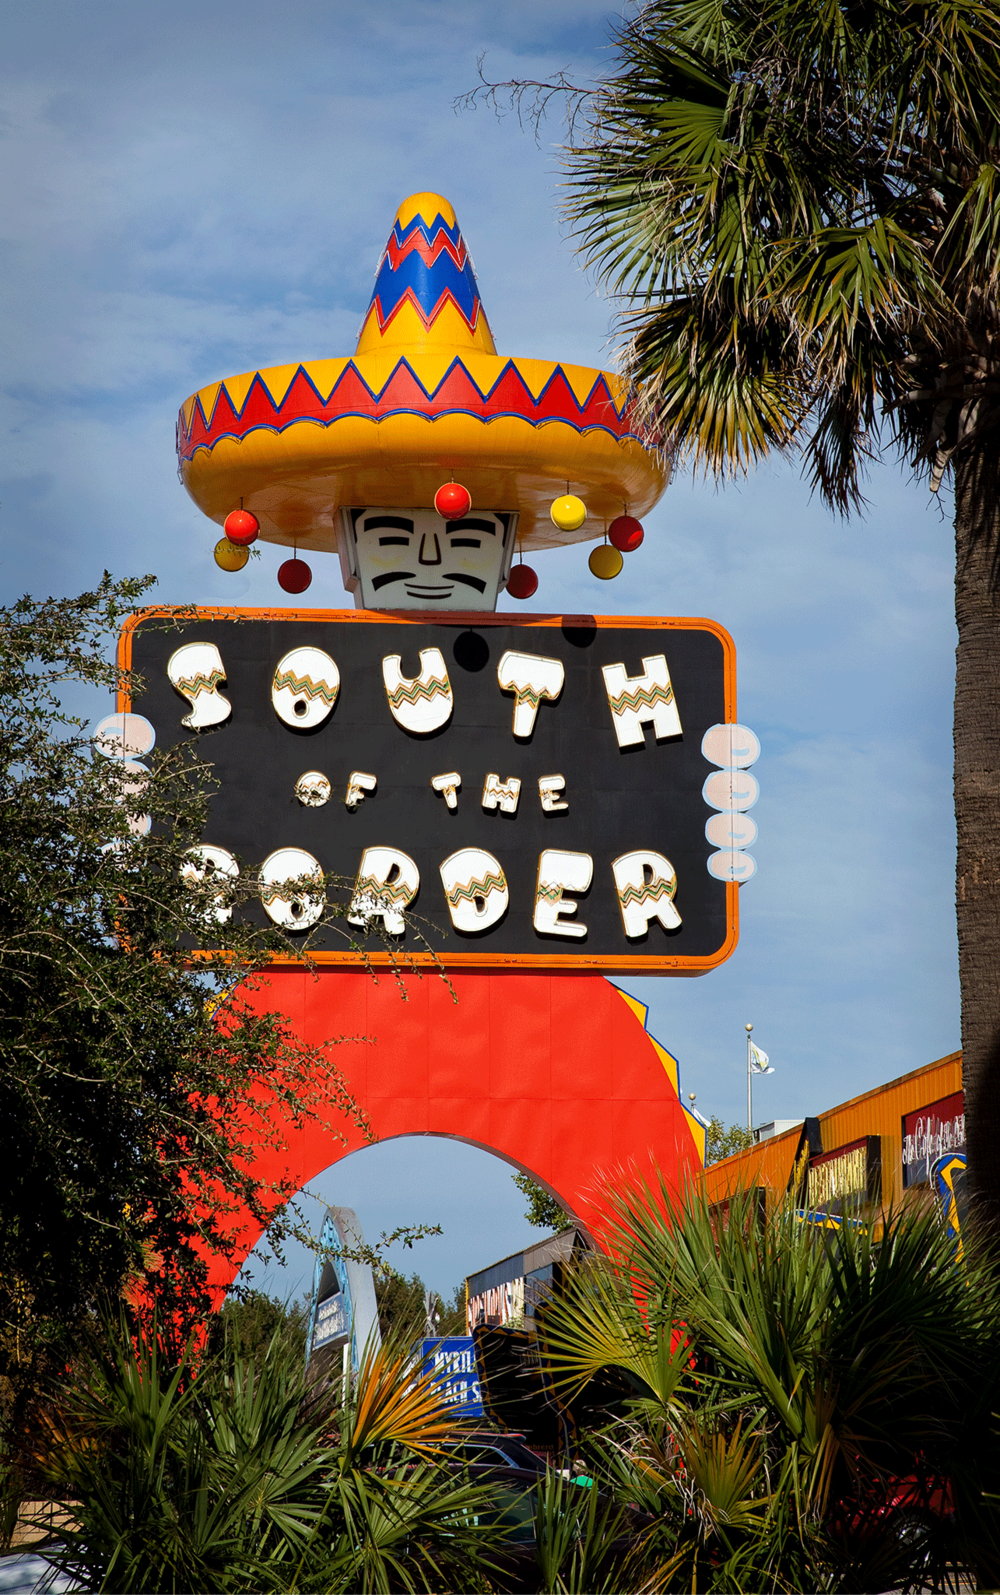 South of the Border - Dillon, SC